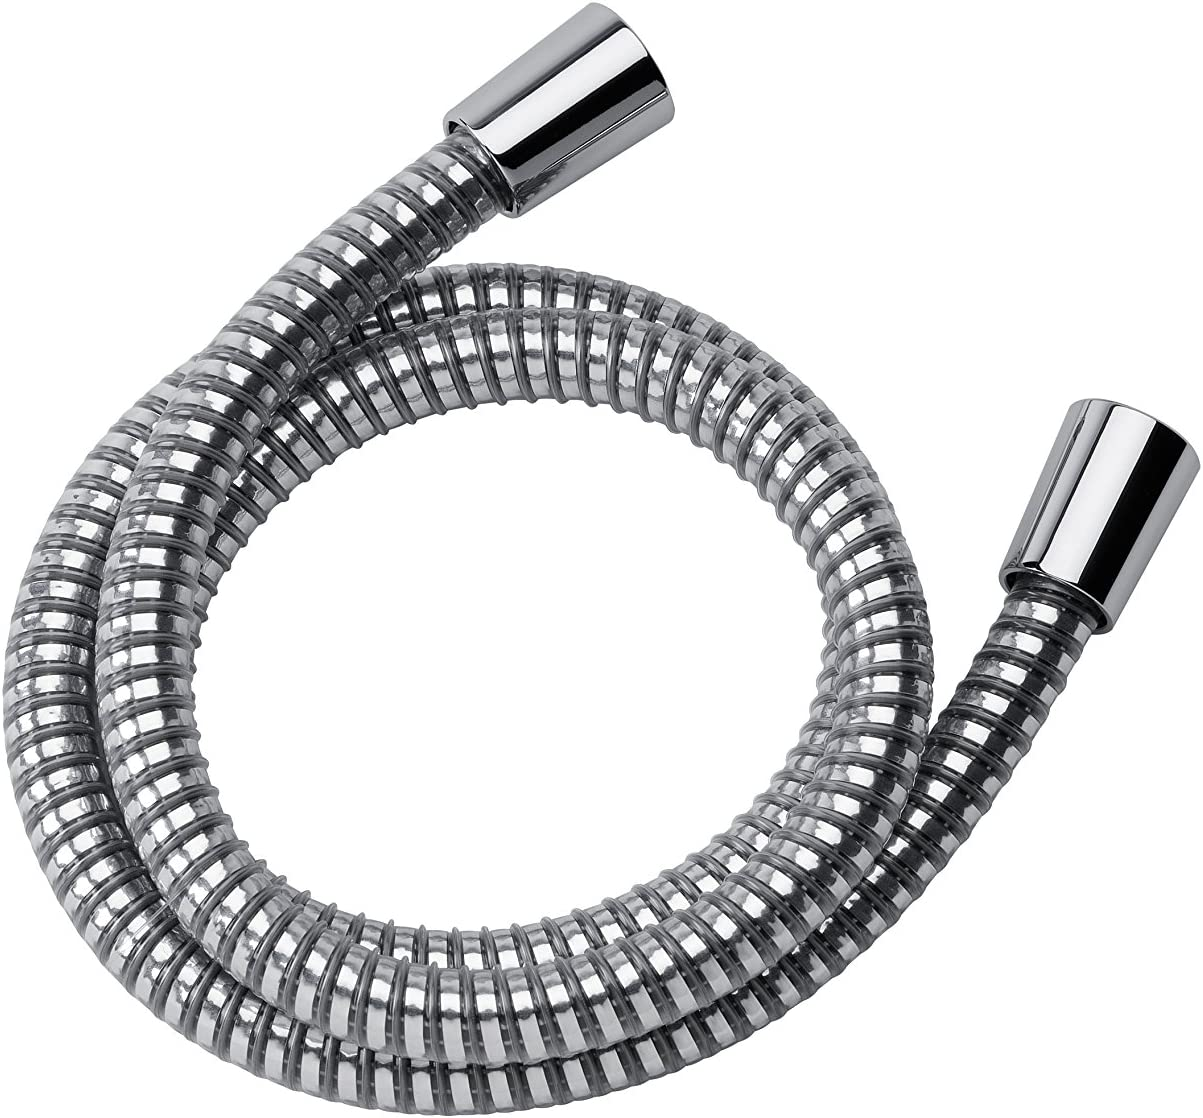 Mira Showers 1.1605.167 Response Plastic Easy Clean Shower Hose 1.25 m, Chrome